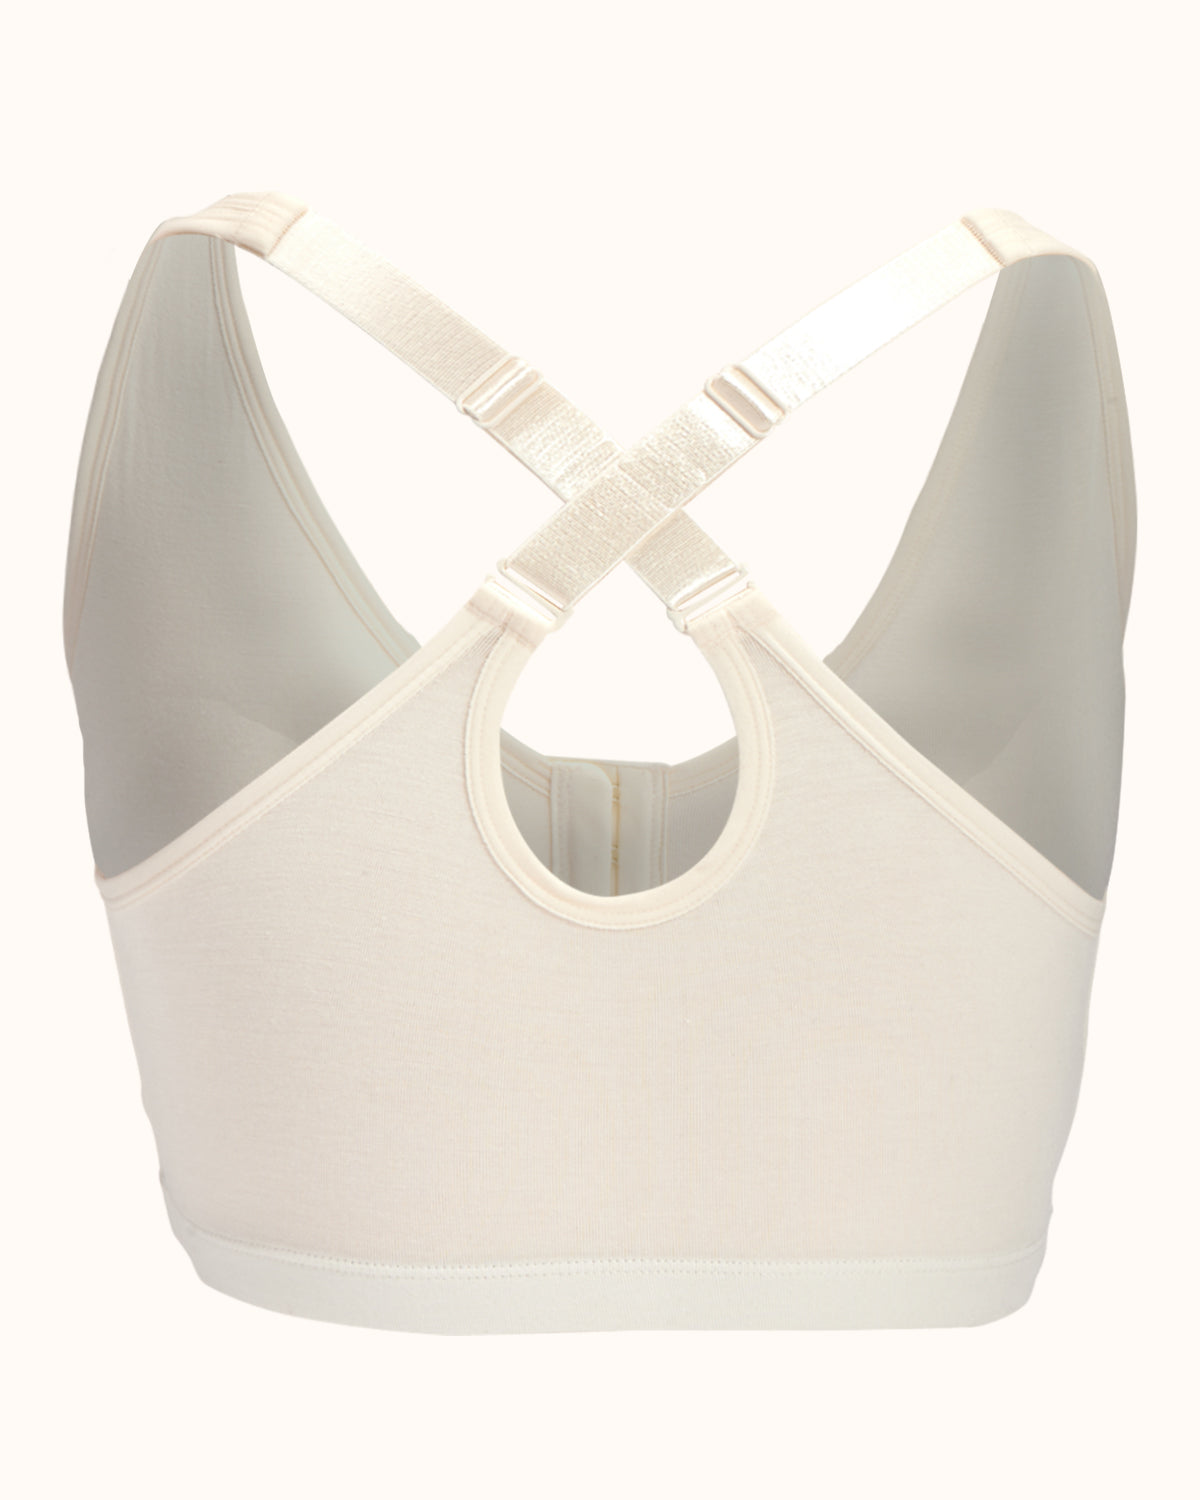 Ivory, pocketed front closure wireless bra with soft modal material and convertible & adjustable straps.